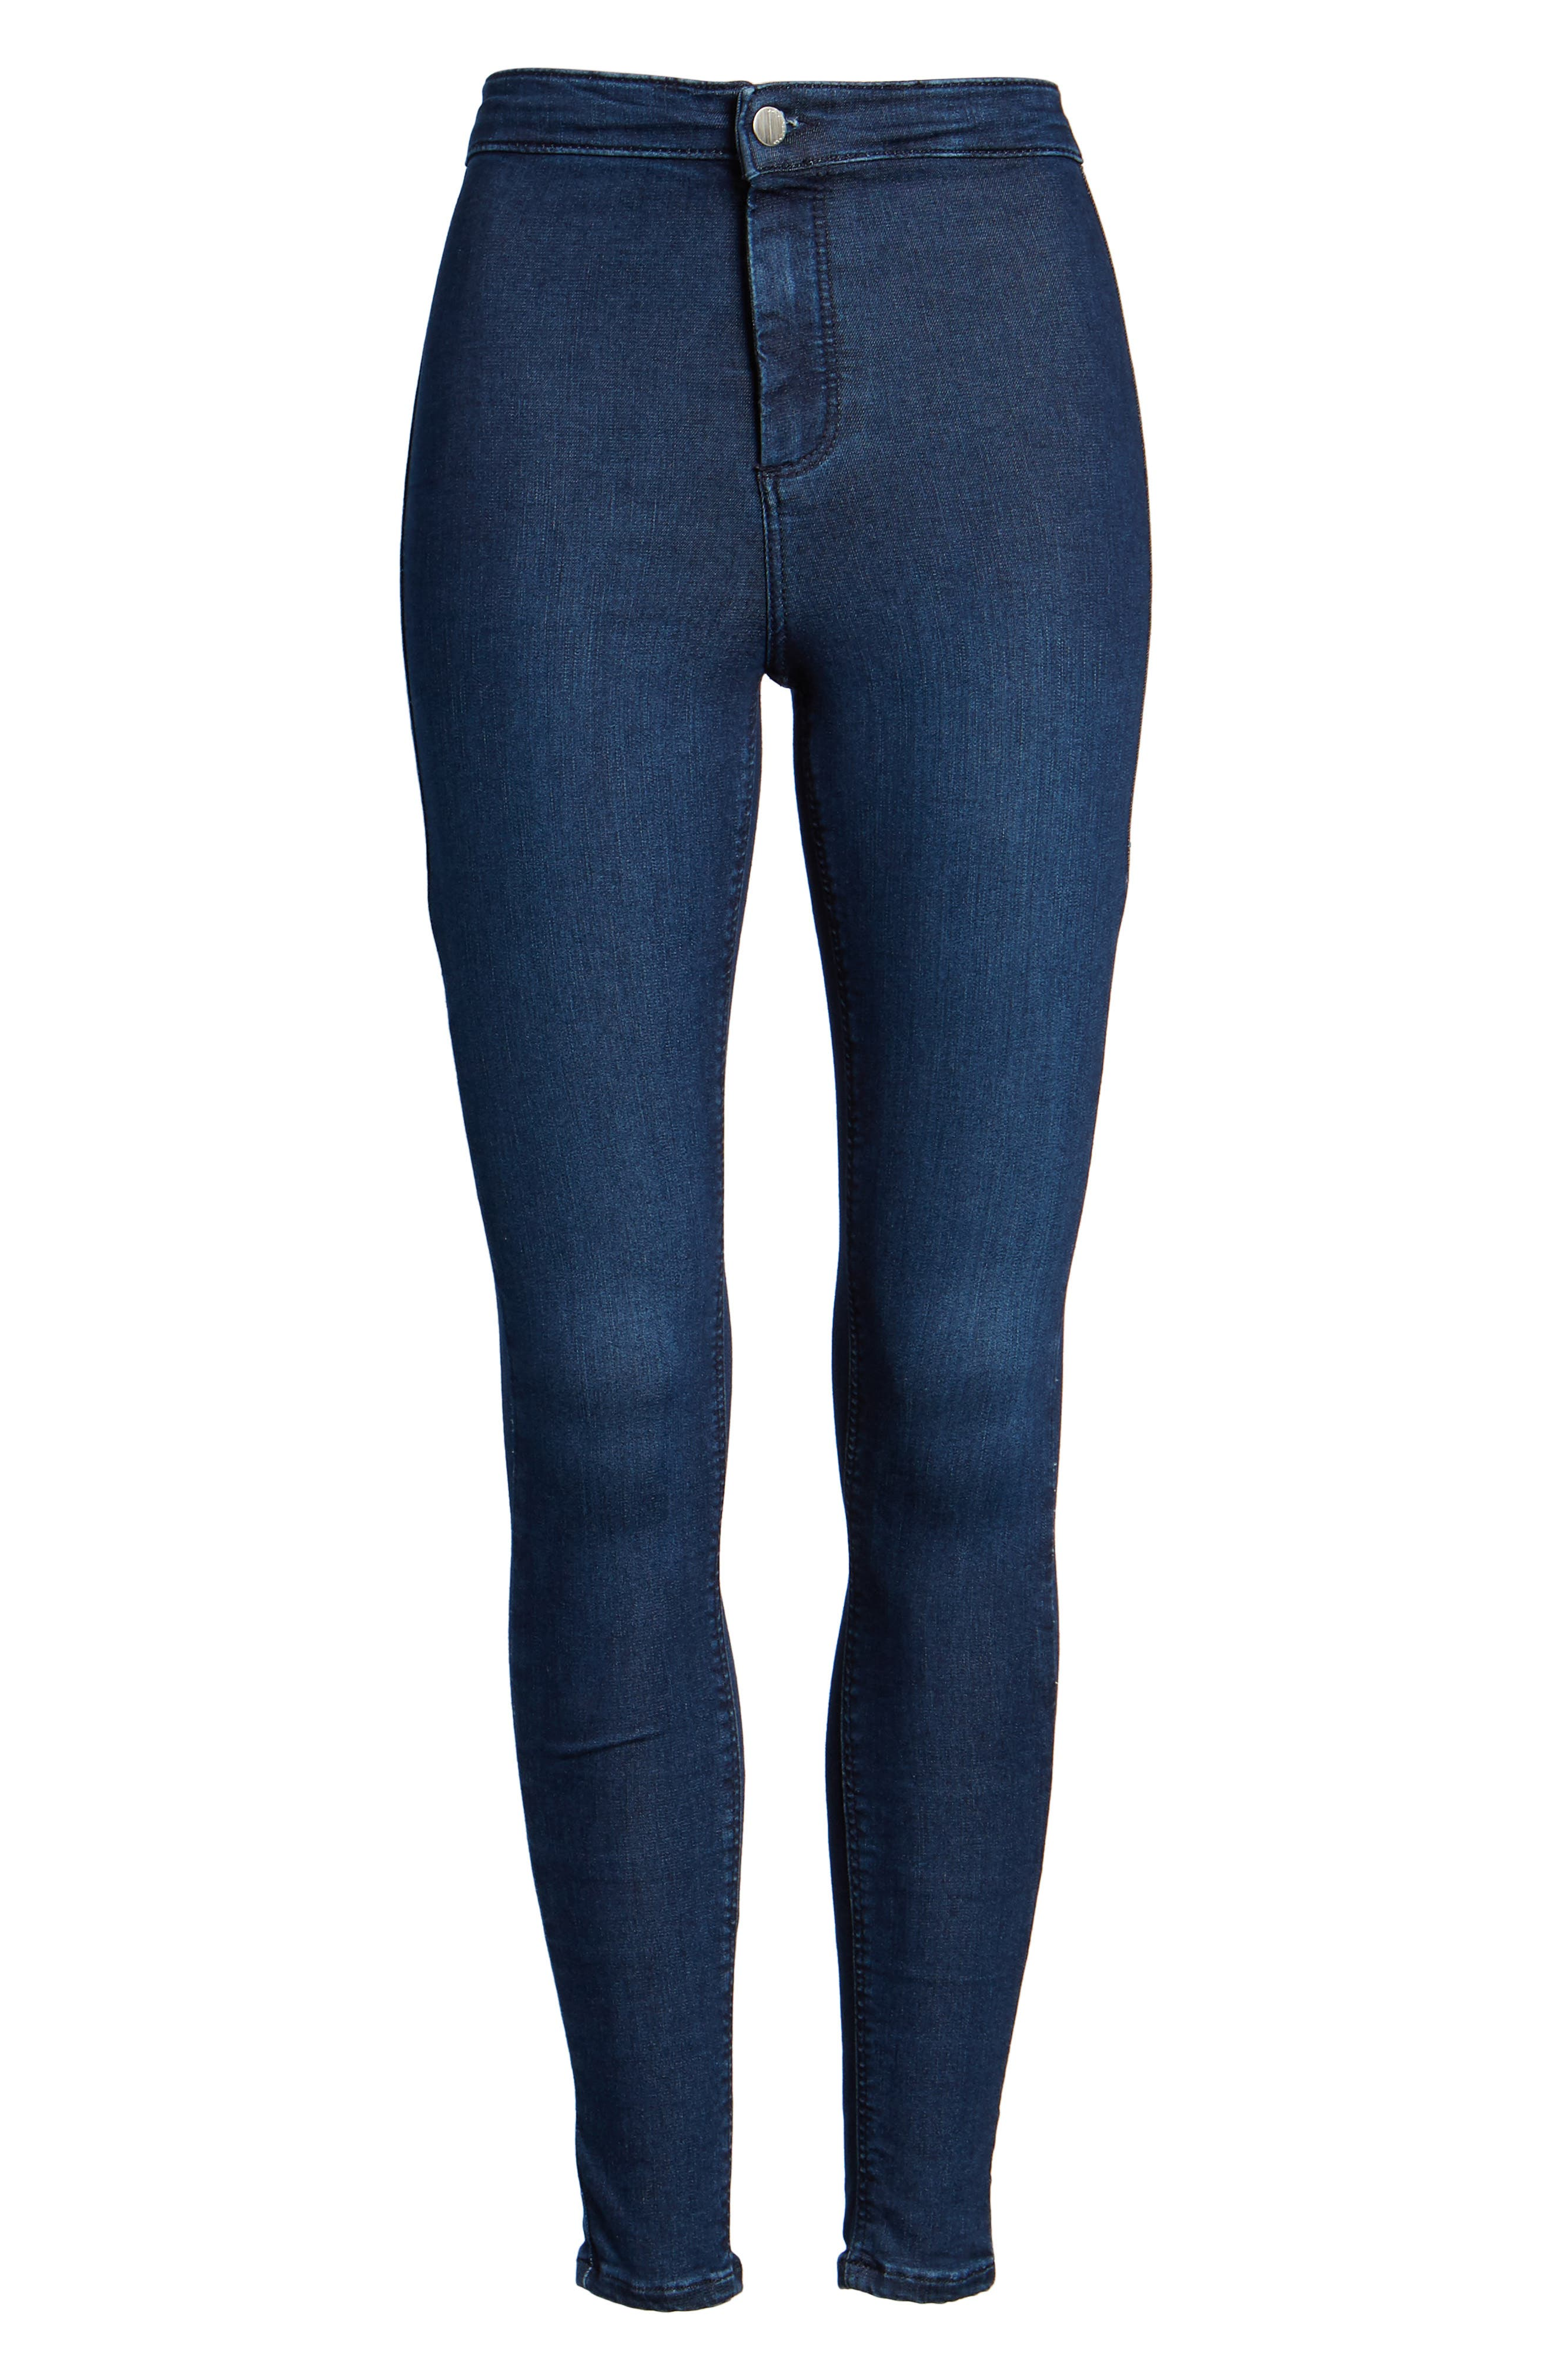 Moto 'Joni' Super Skinny Jeans,                             Alternate thumbnail 7, color,                             400